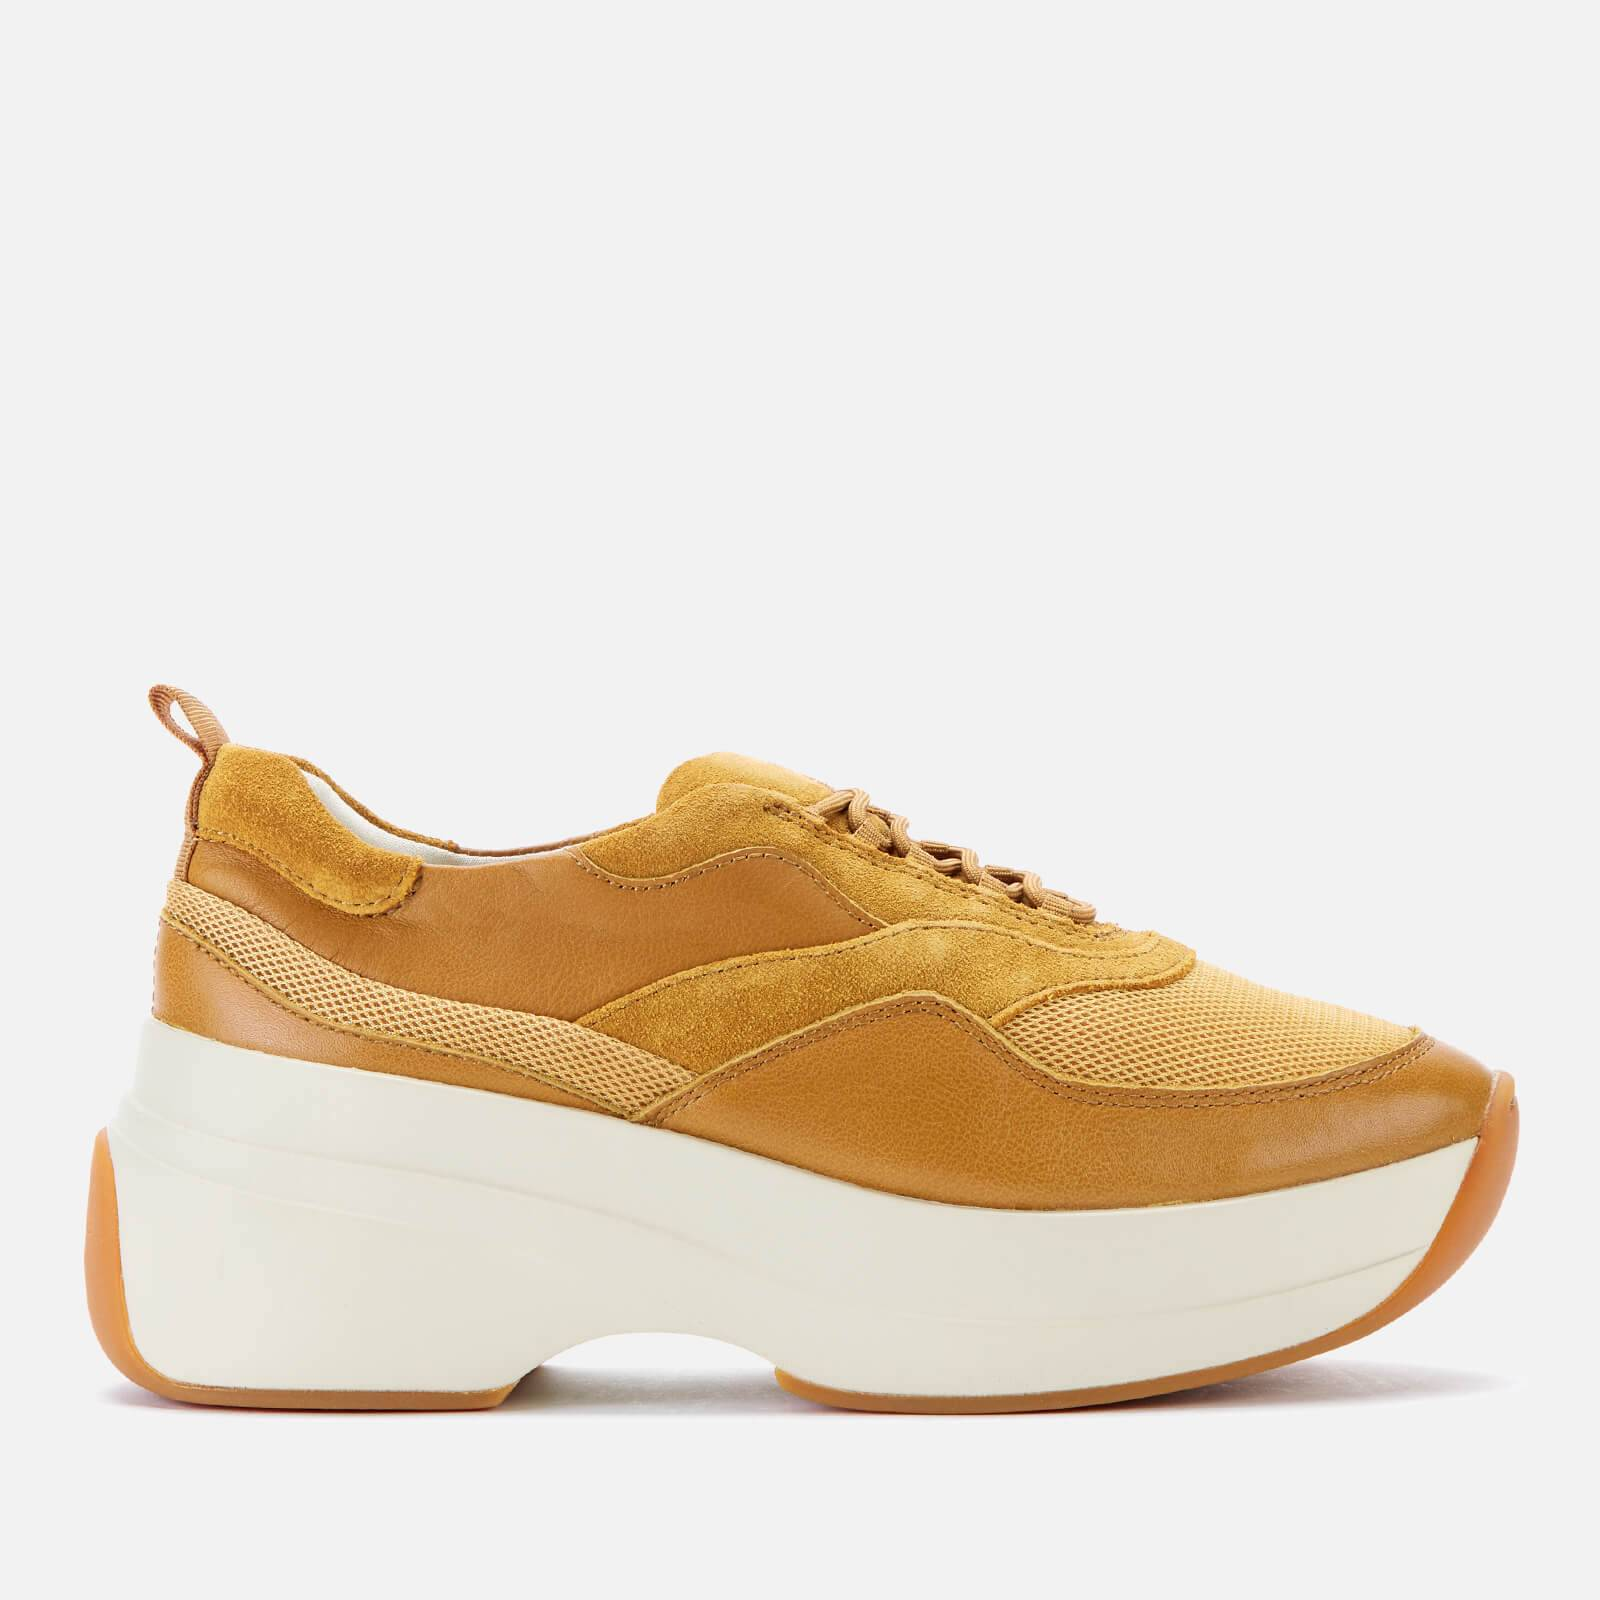 Vagabond Women's Sprint 2.0 Chunky Trainers - Golden Oat - UK 6 - Yellow